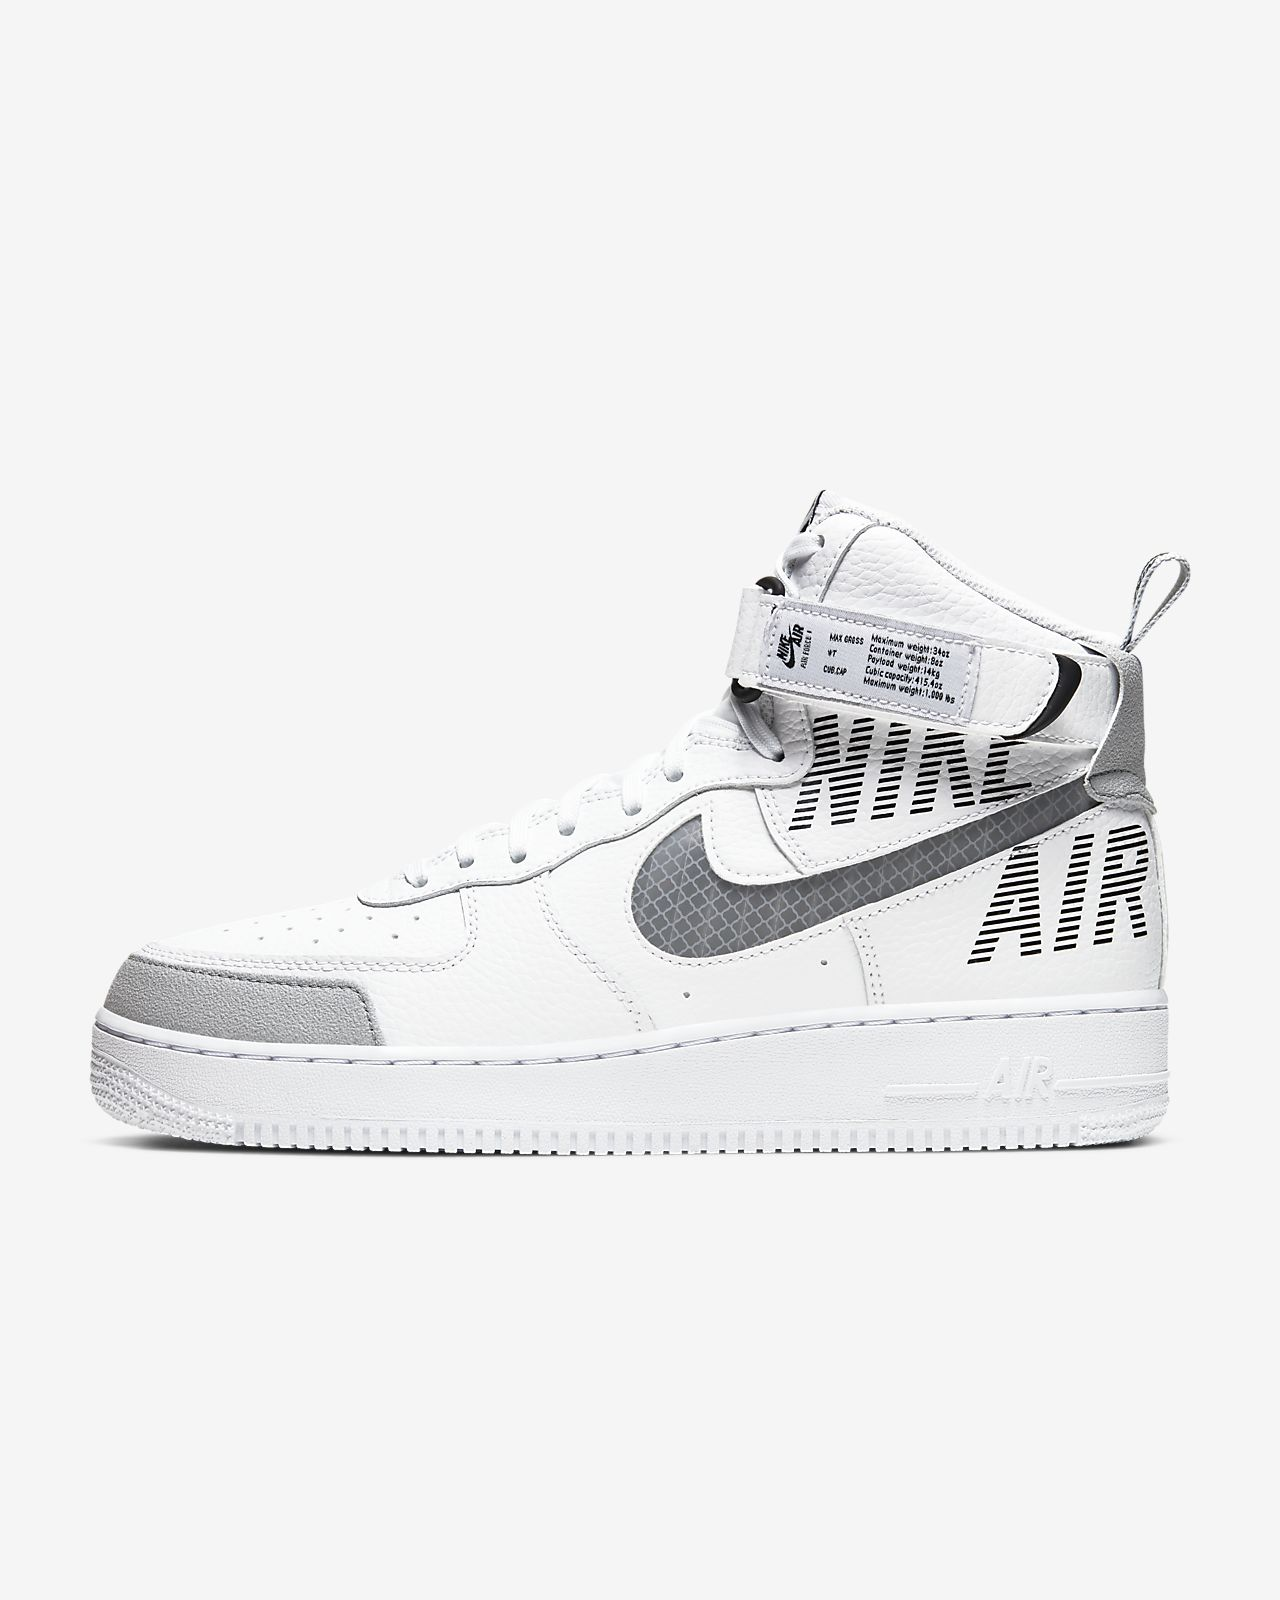 Nike Air Force 1 High '07 LV8 2 Men's Shoe